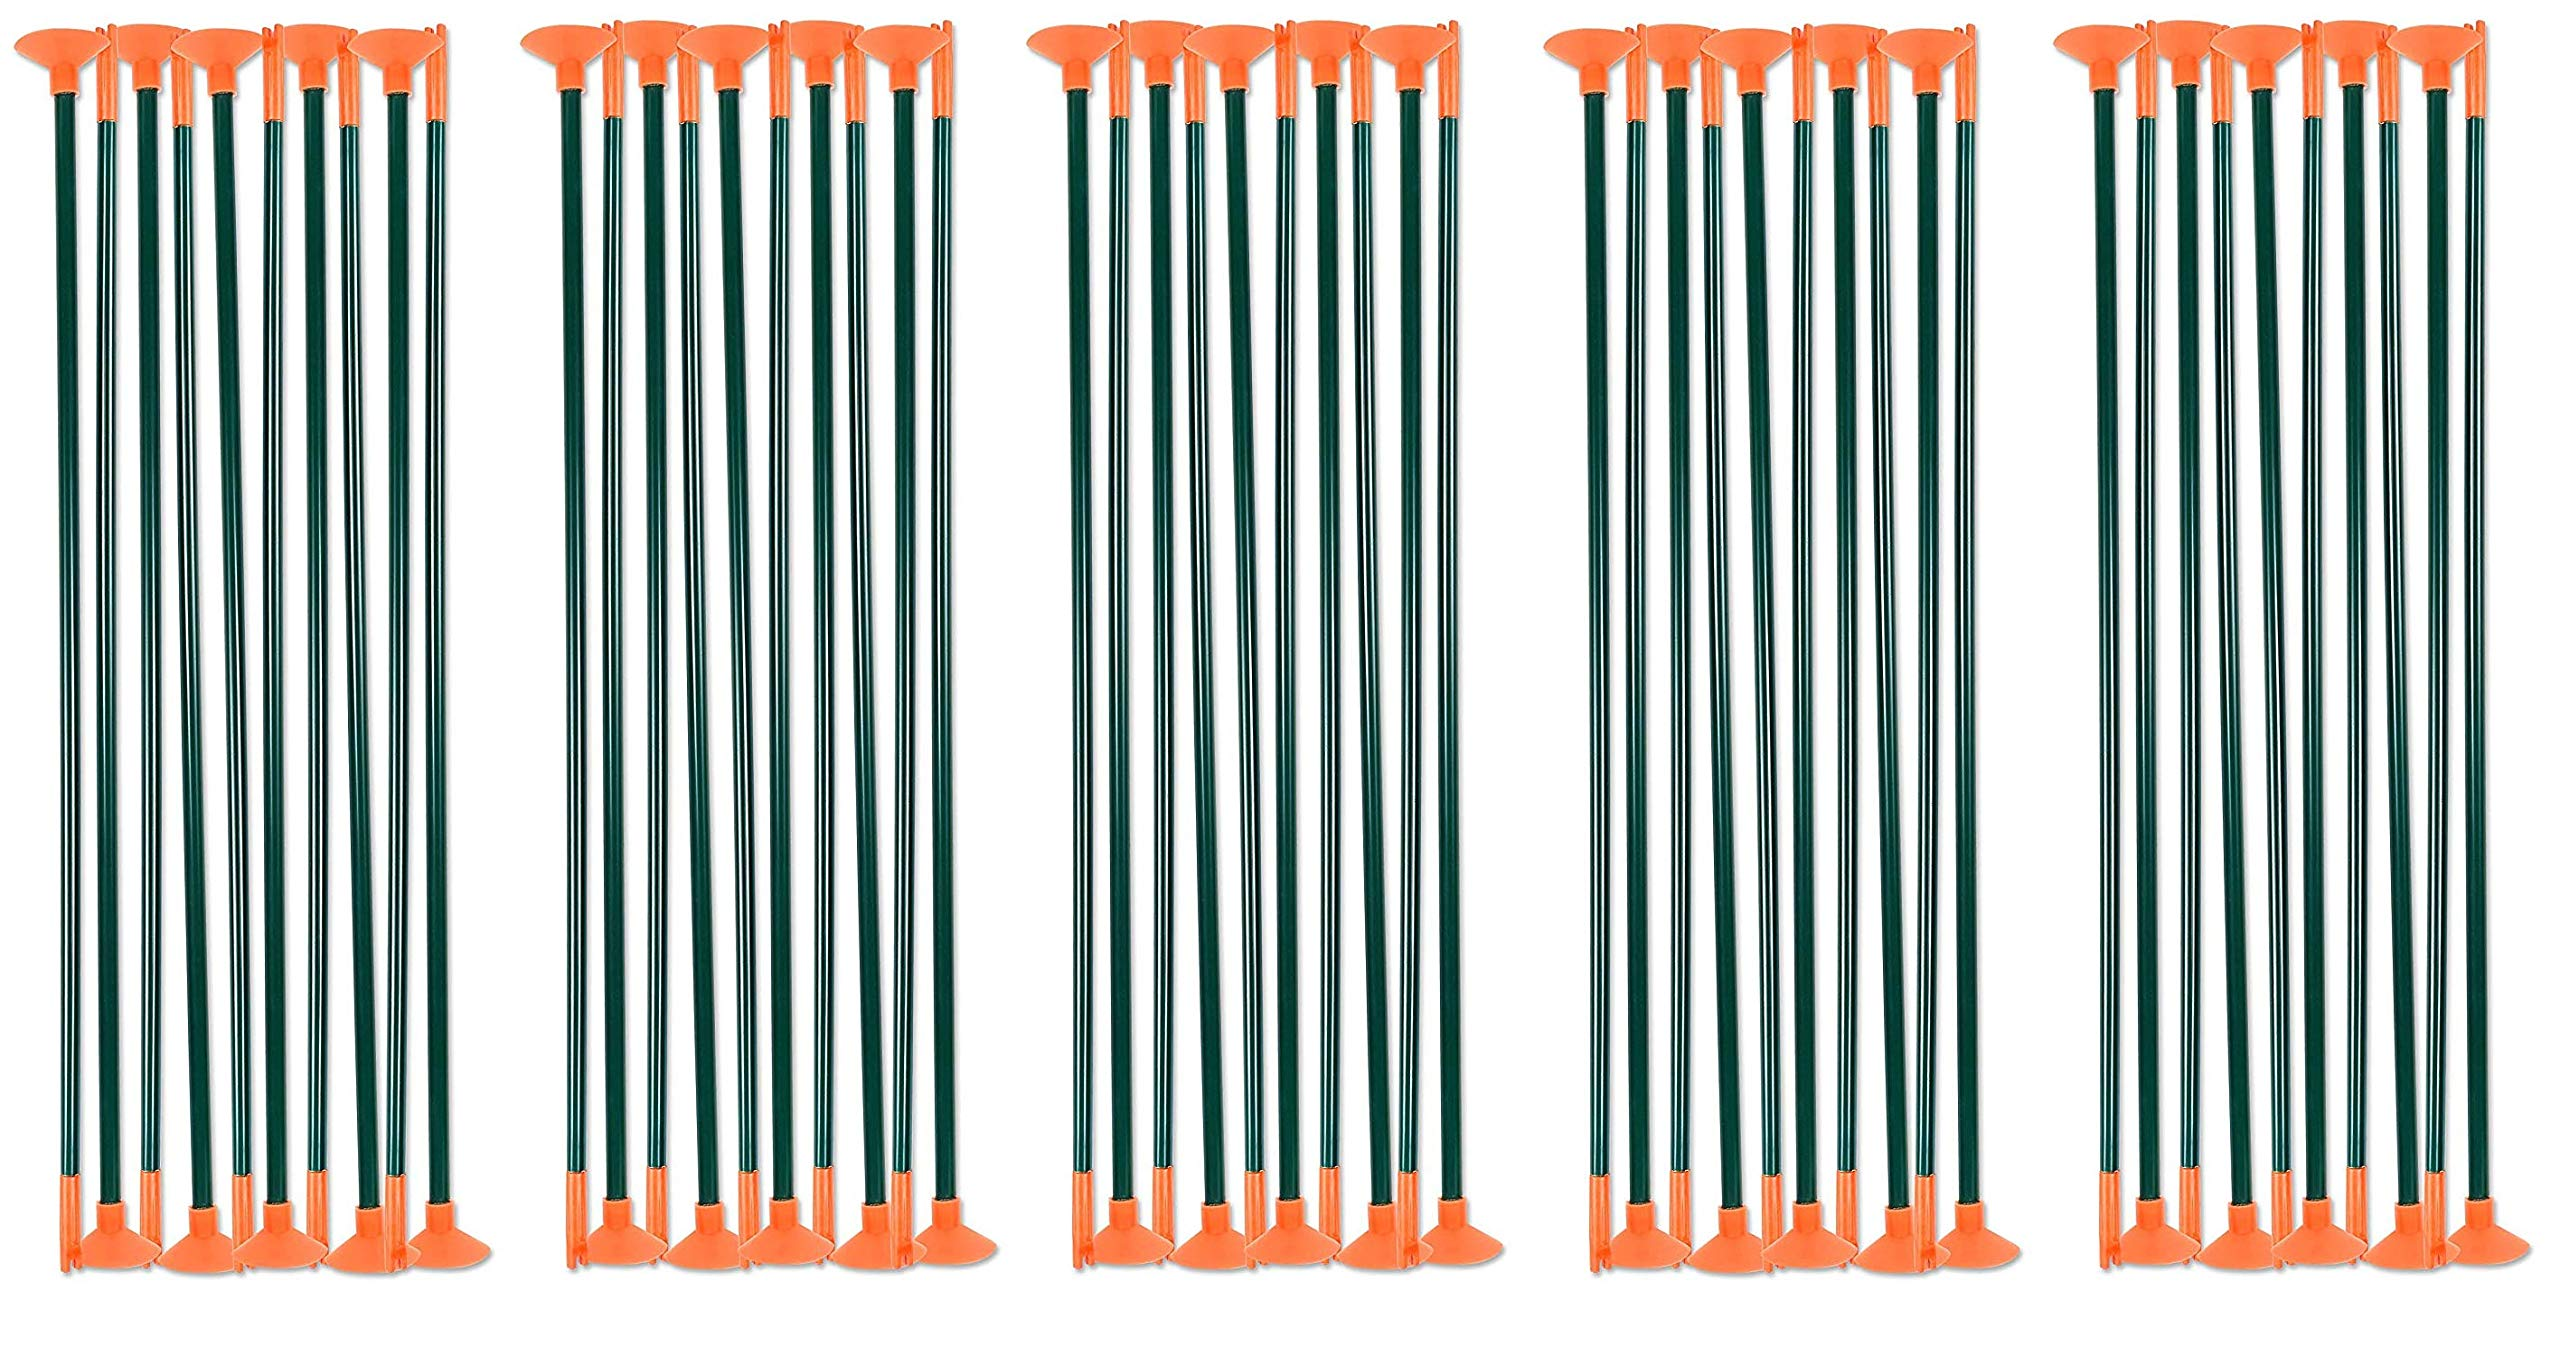 Sunny Days Entertainment Maxx Action Hunting Series 10-Pack Replacement Arrows (Fivе Расk)